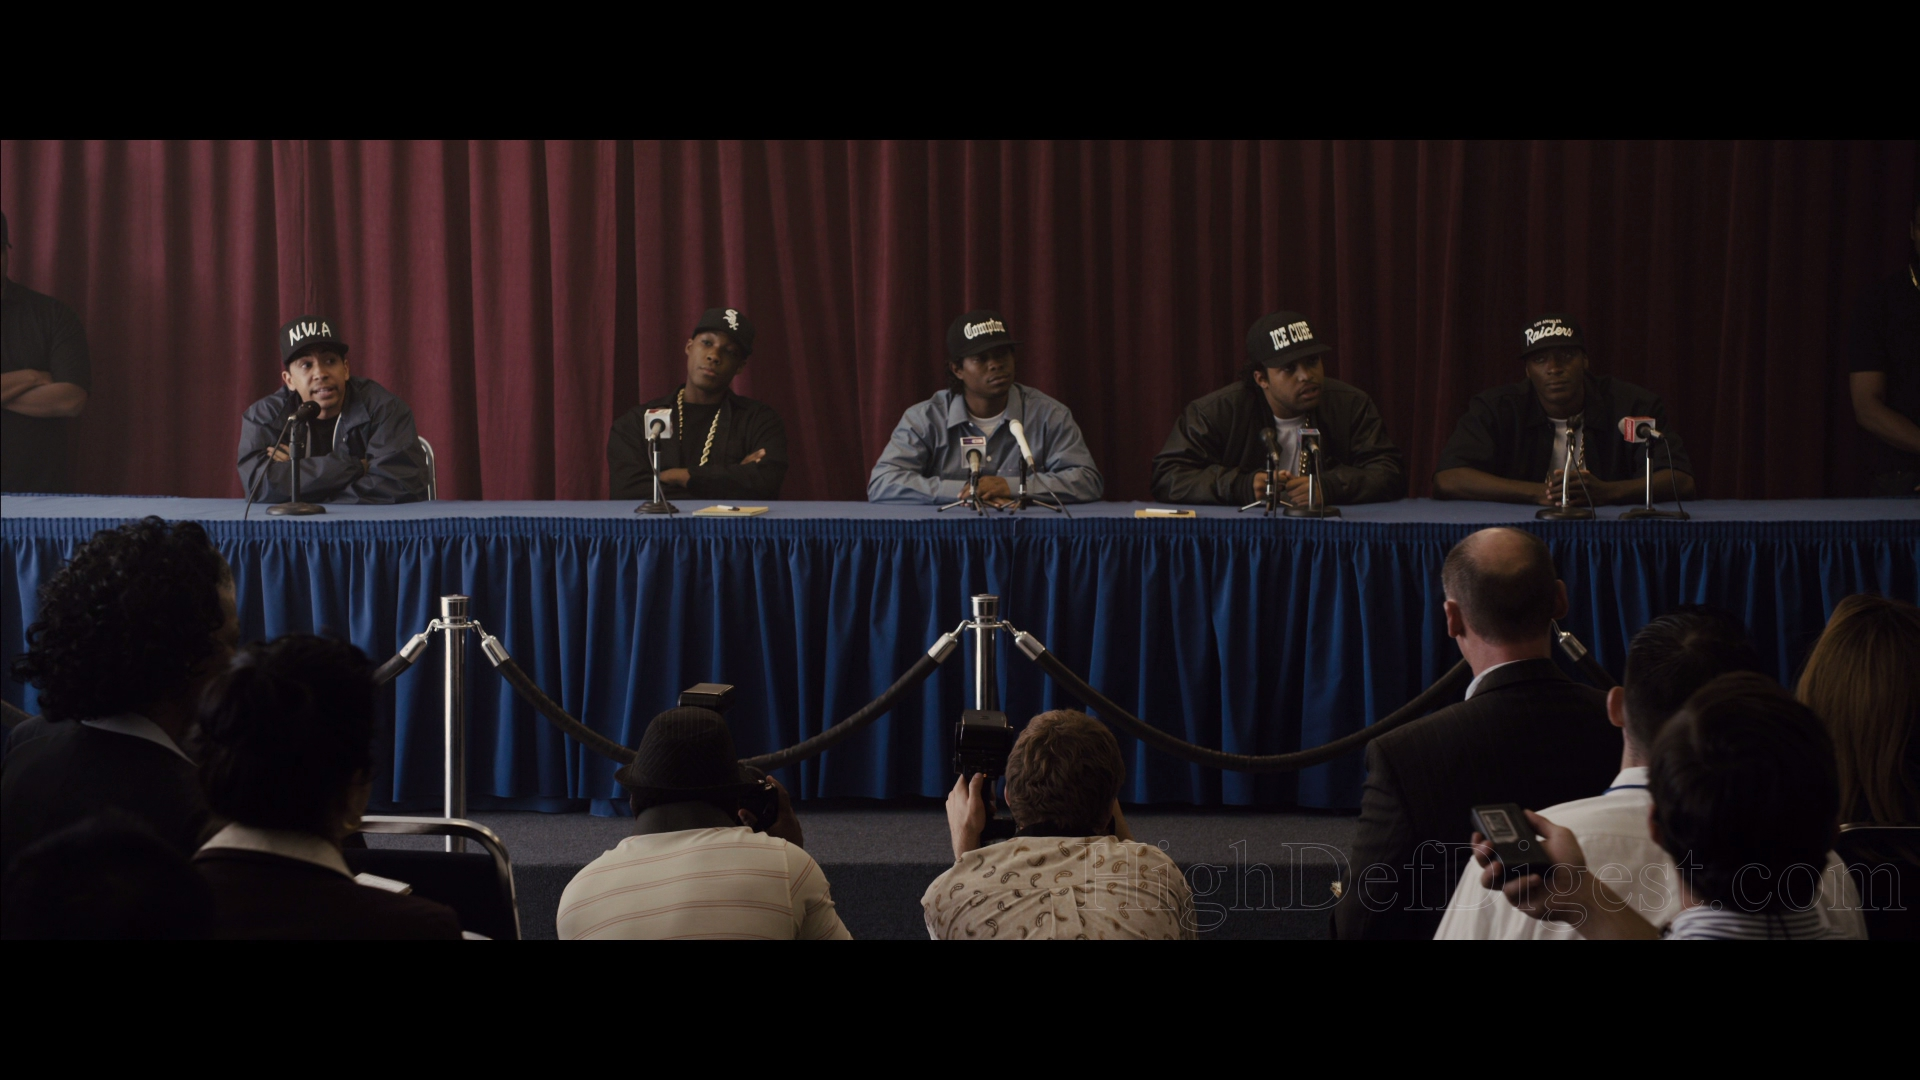 """a critique of the portrayal of reality in straight outta compton a film by f gary gray Straight outta compton—the allmovie review by director f gary gray tells the story of catapulting the group into the public eye with their """"reality rap."""